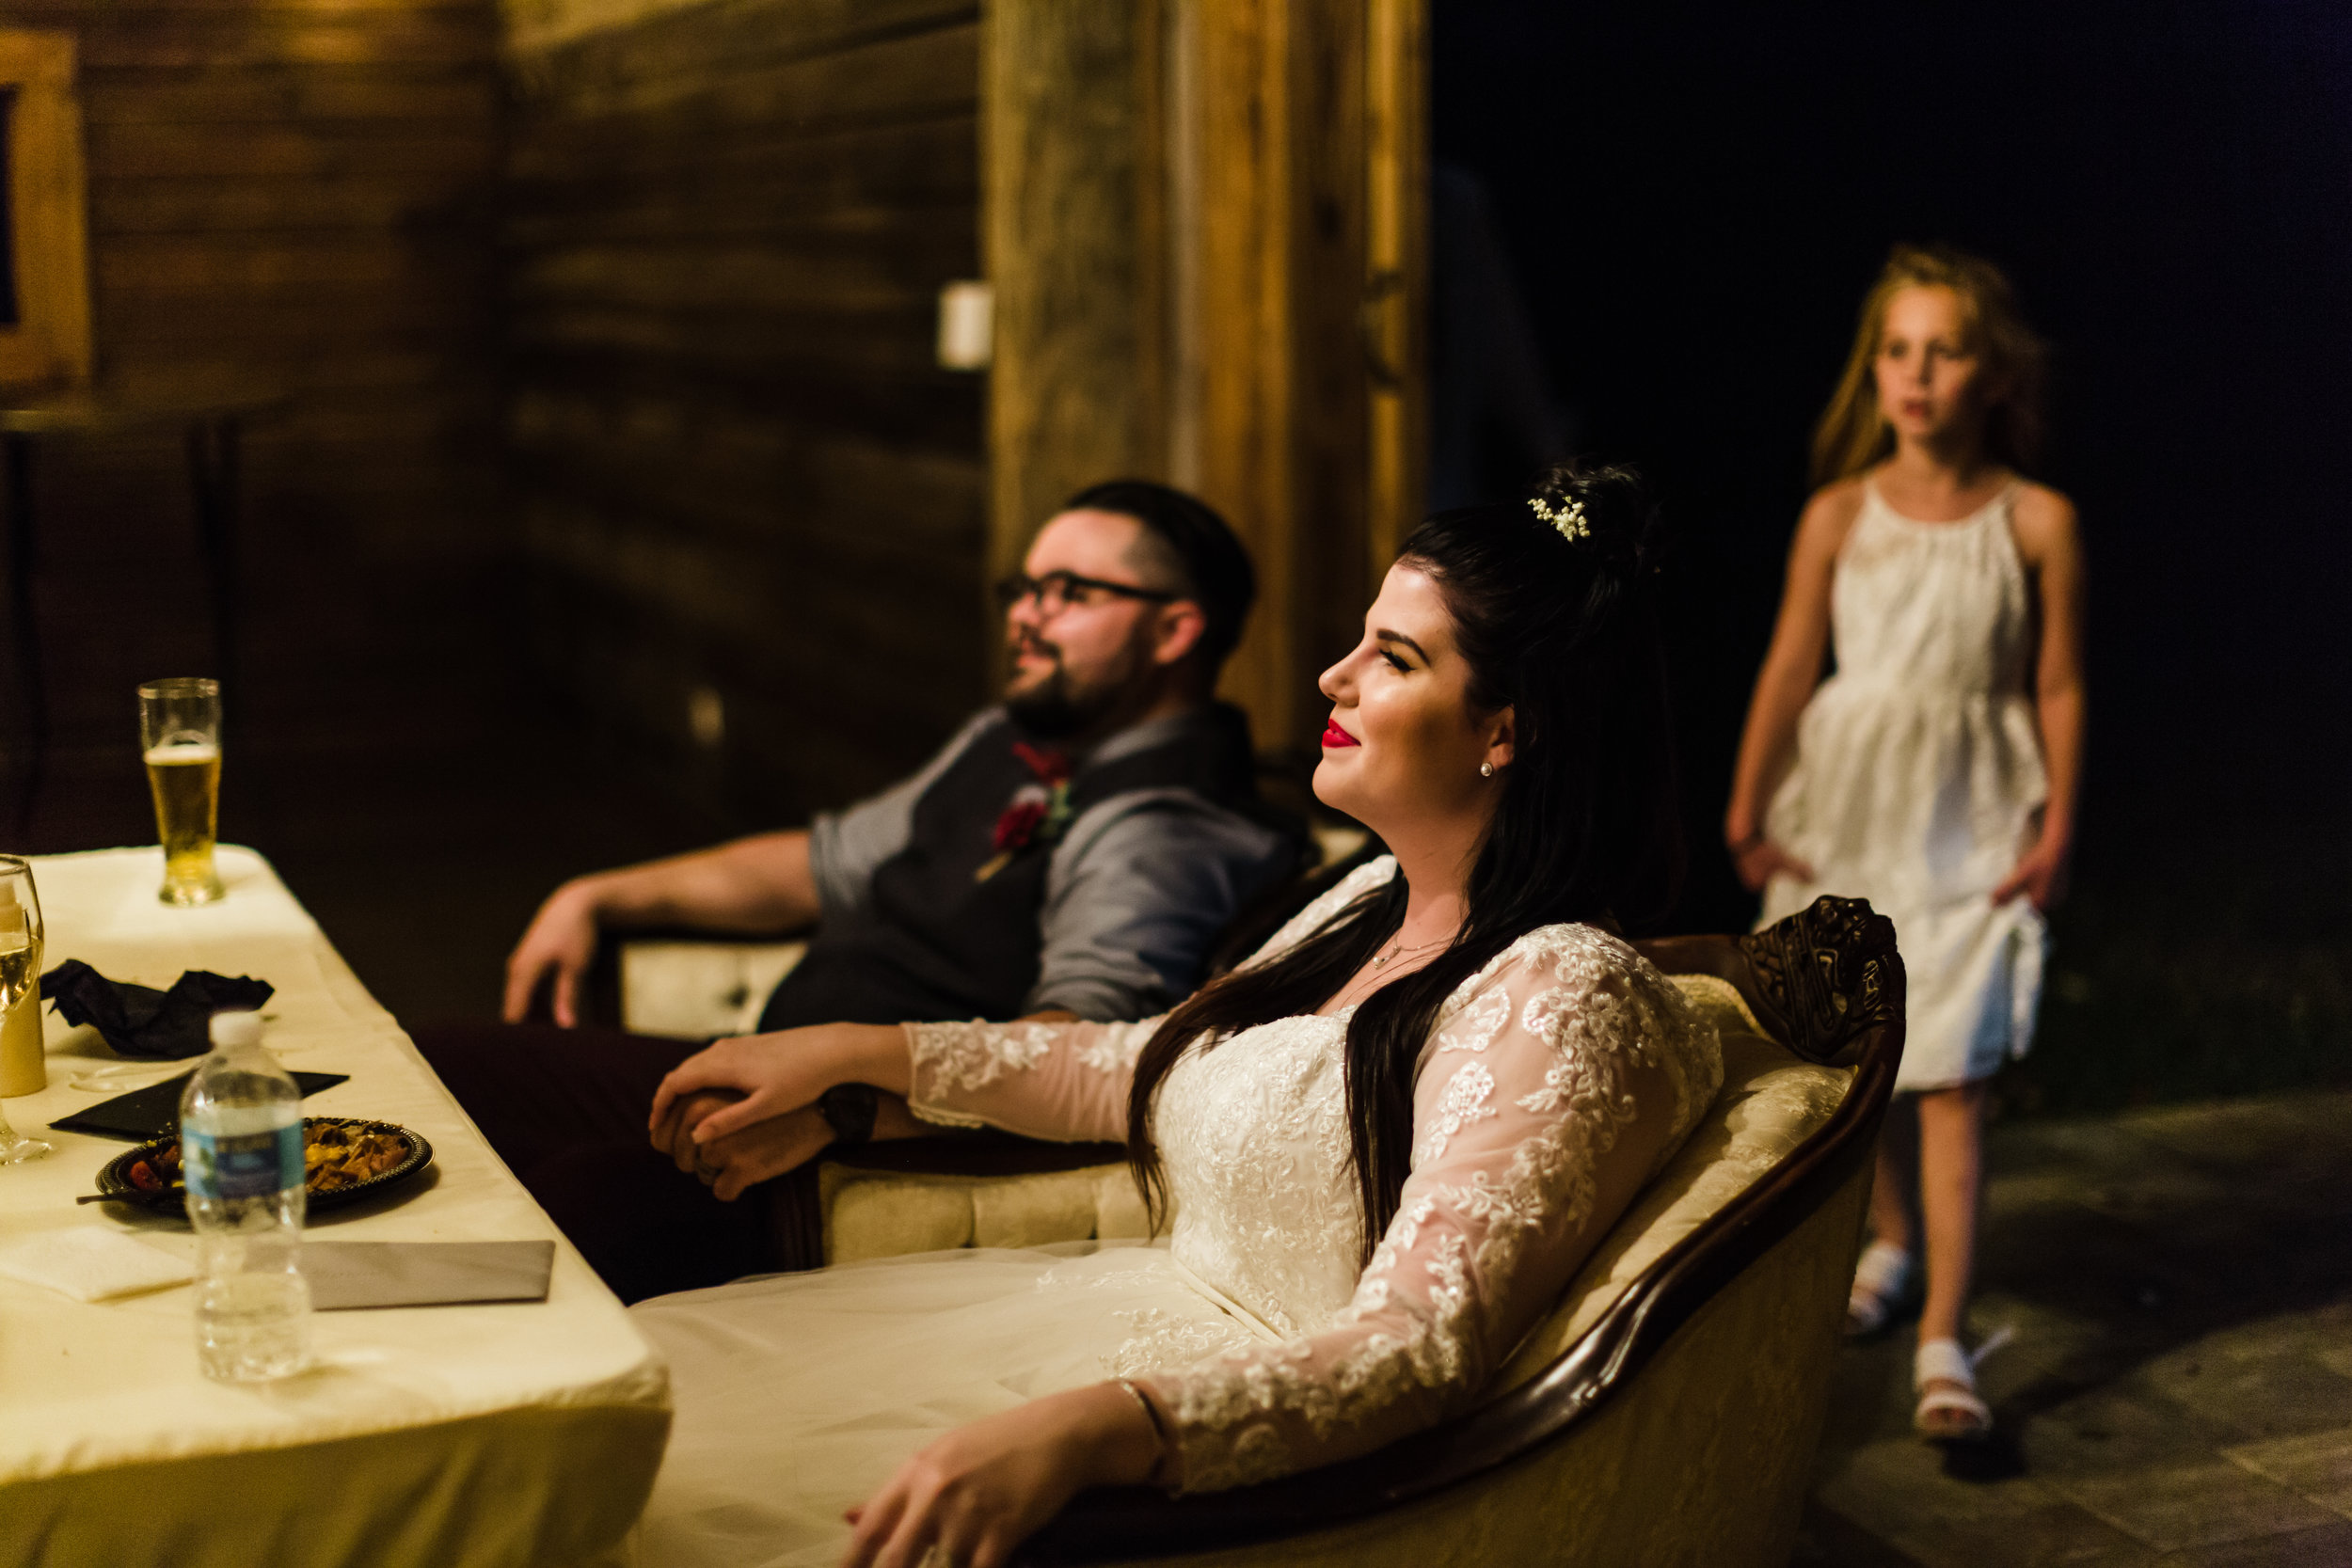 2018.11.11 Paige and TJ Enchanting Barn Wedding (609 of 841).jpg